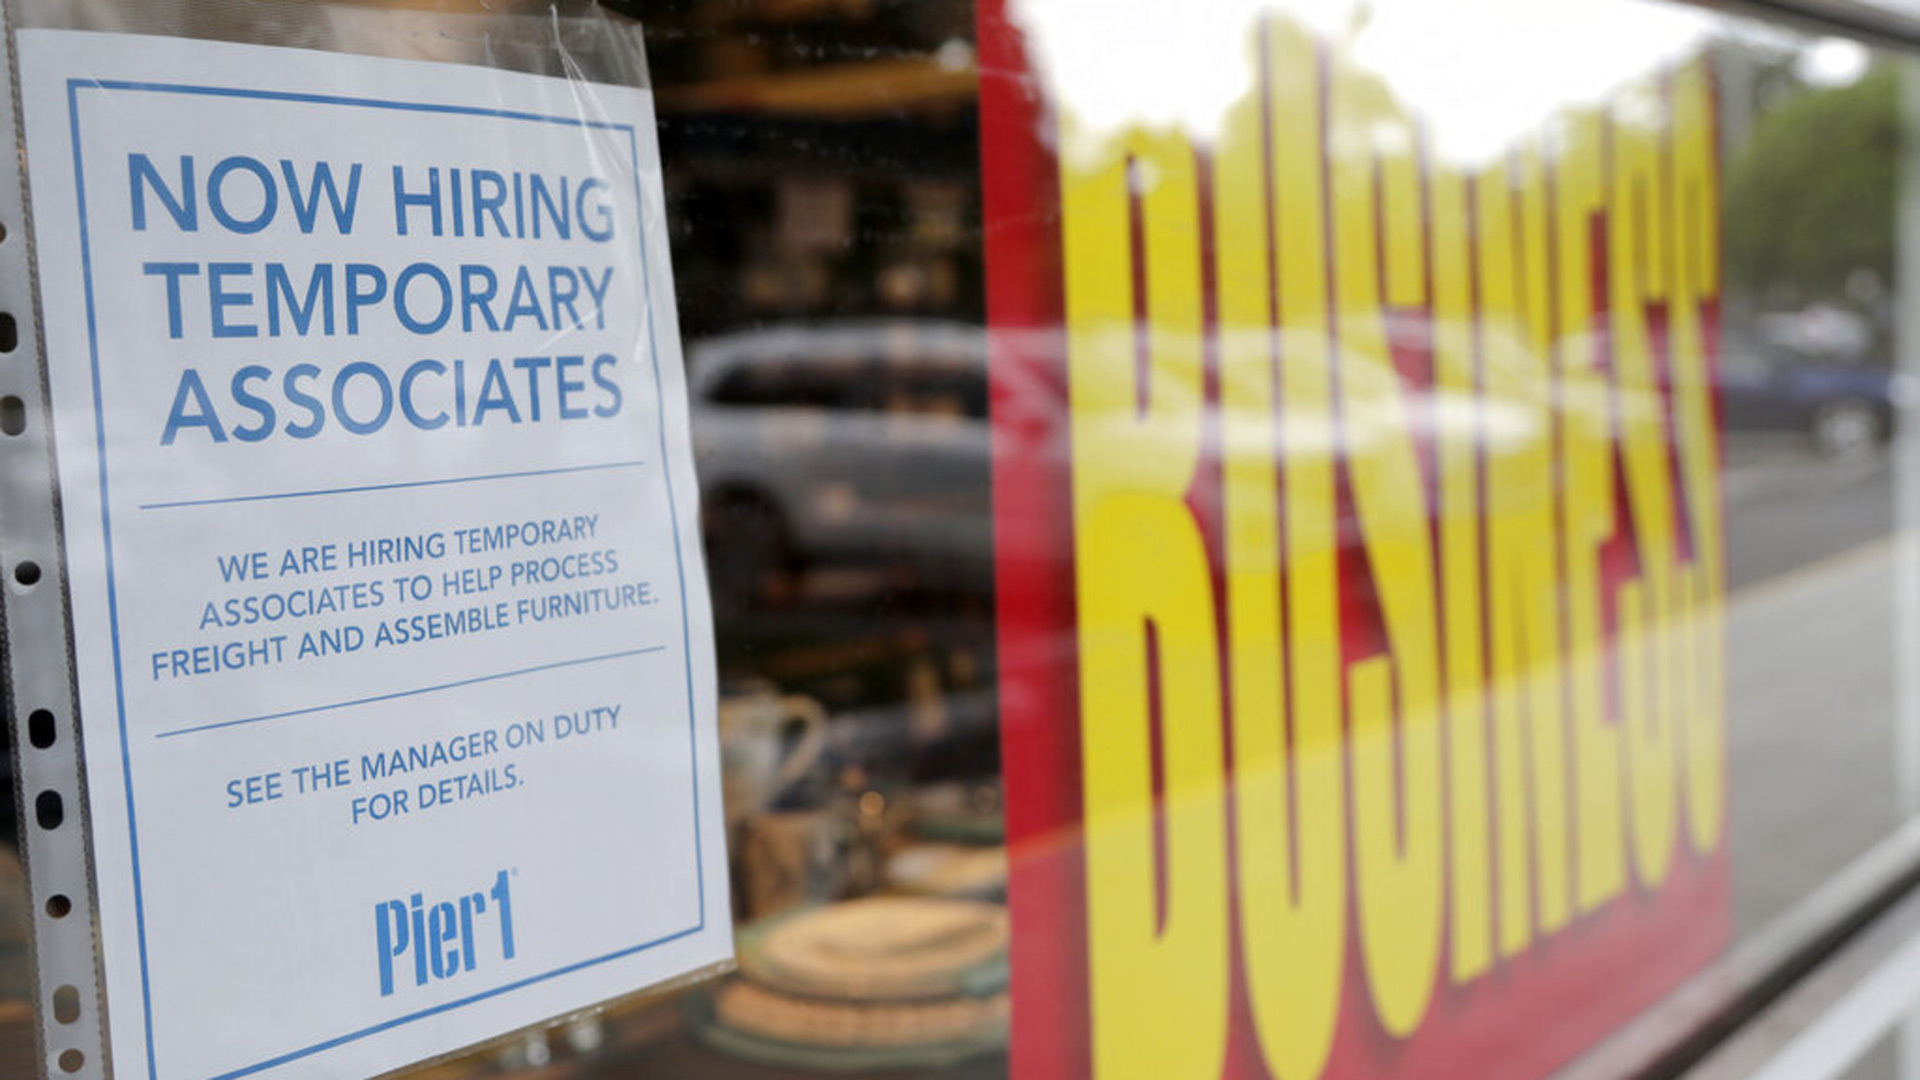 A sign advertises hiring